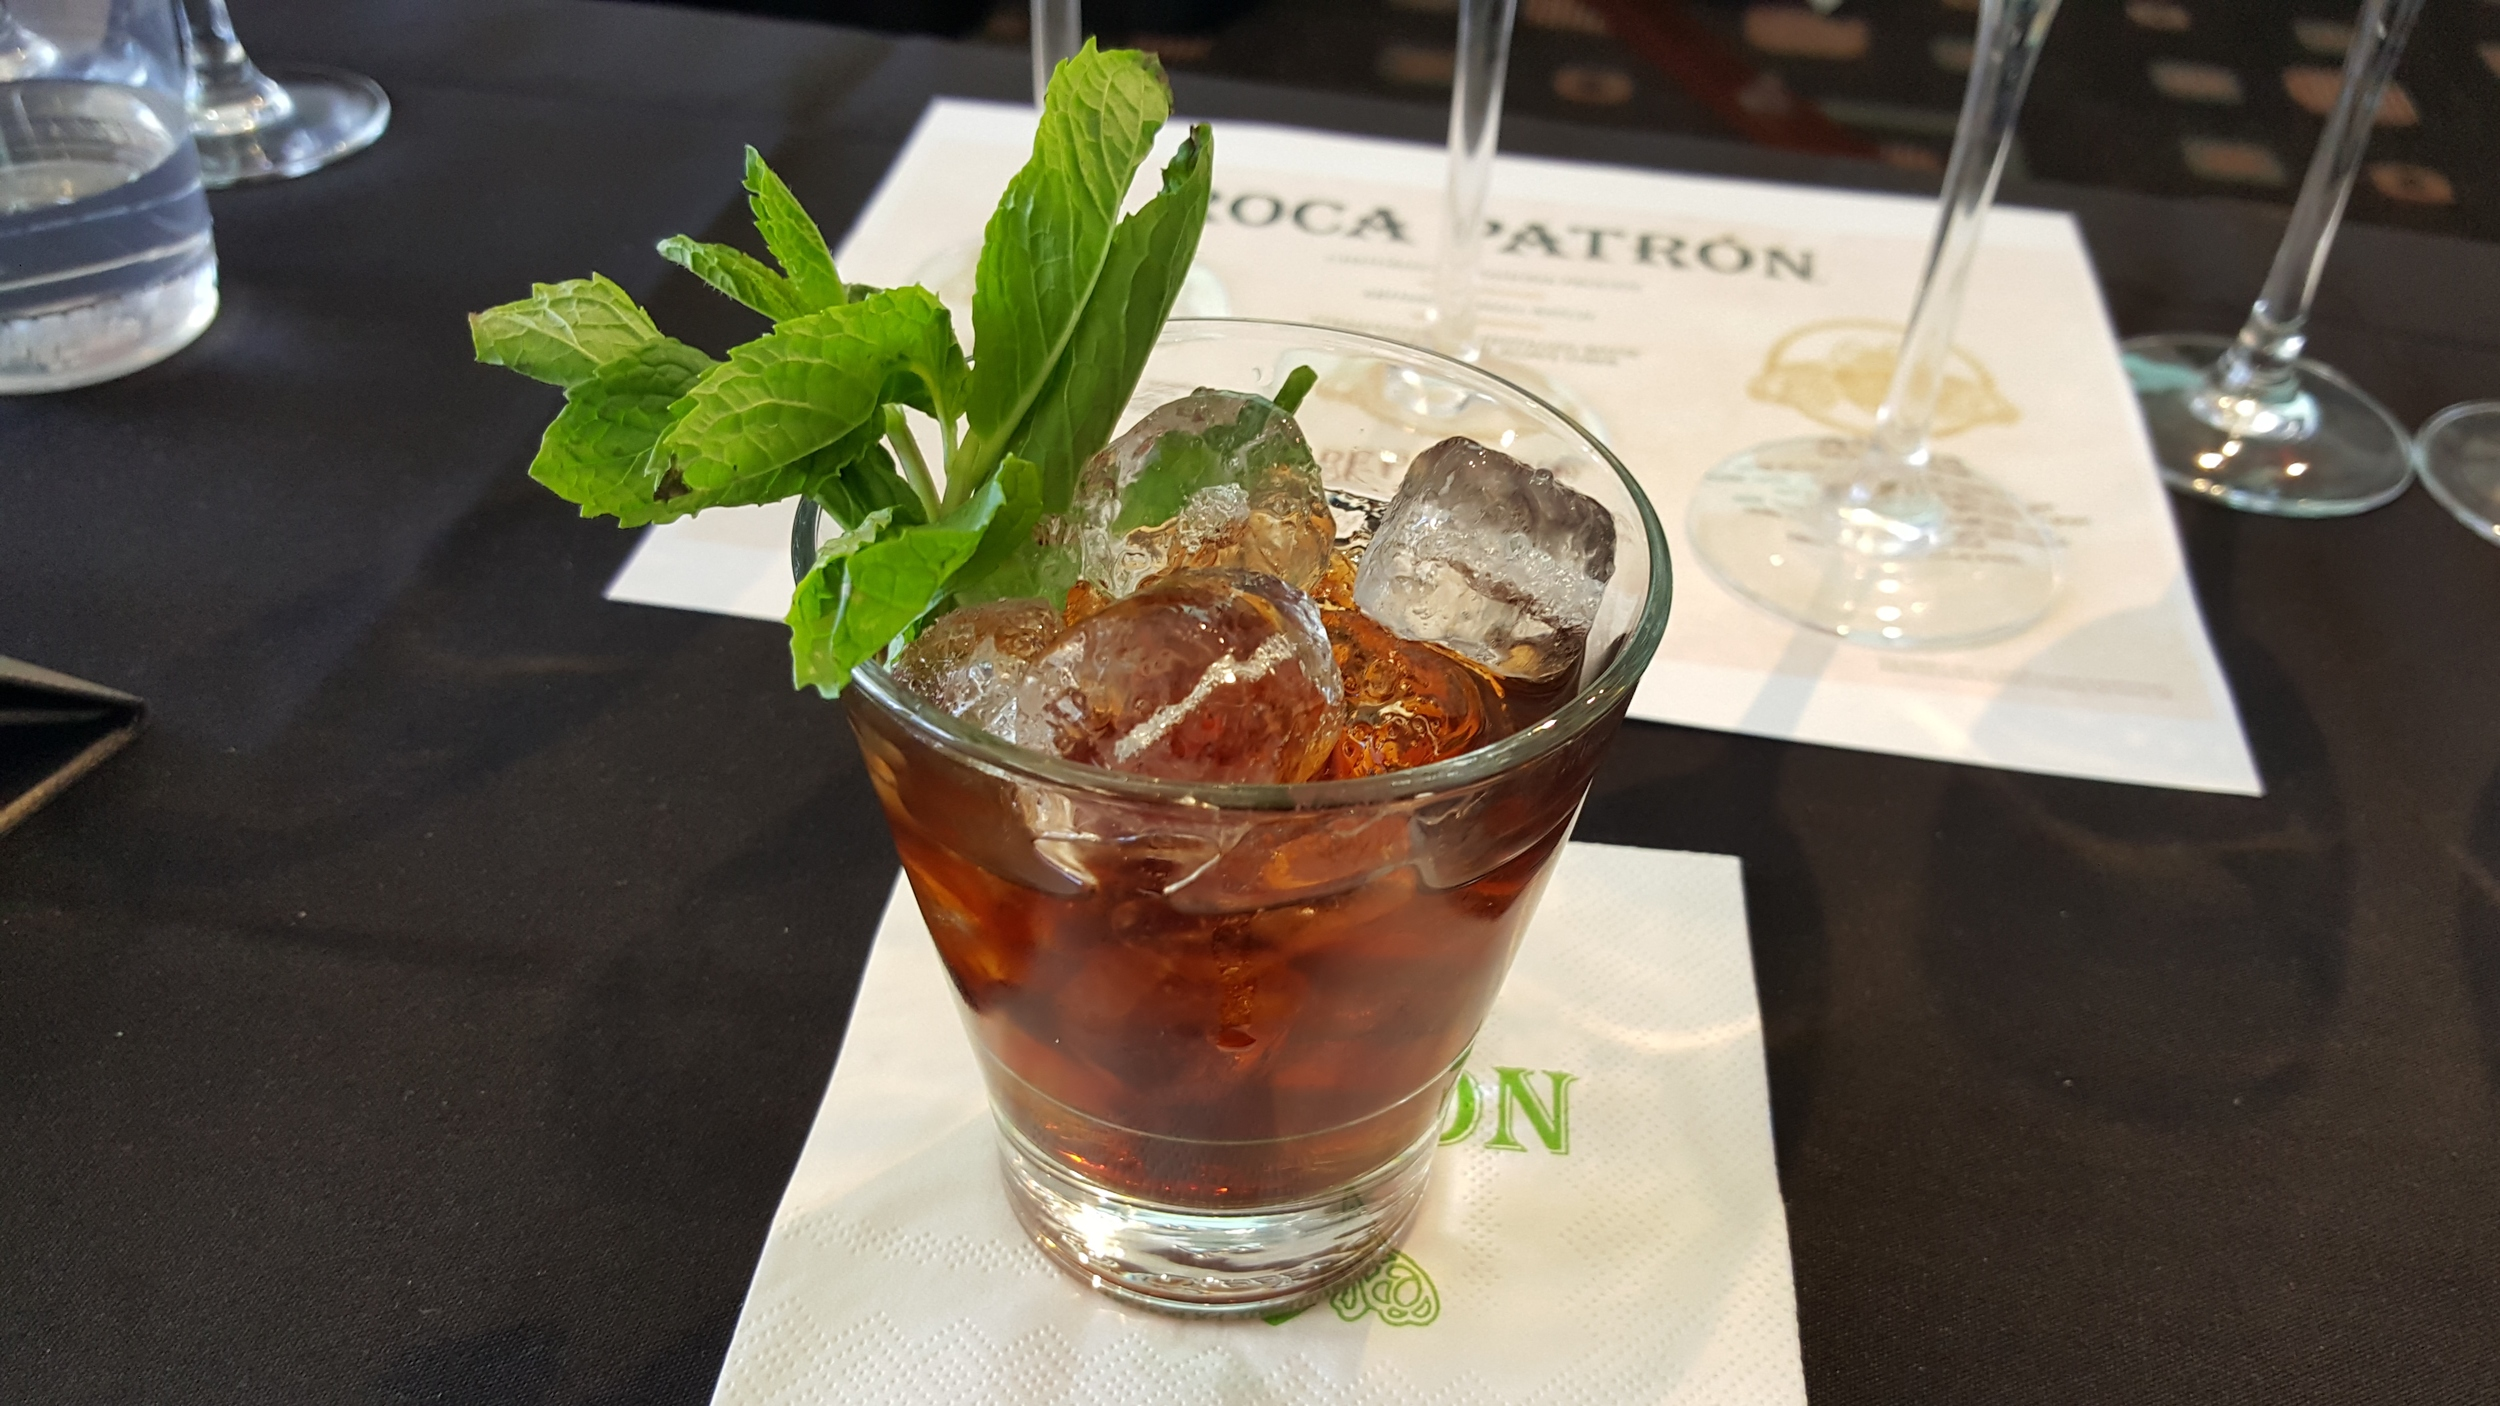 Roca Silver and XO Cafe Julep